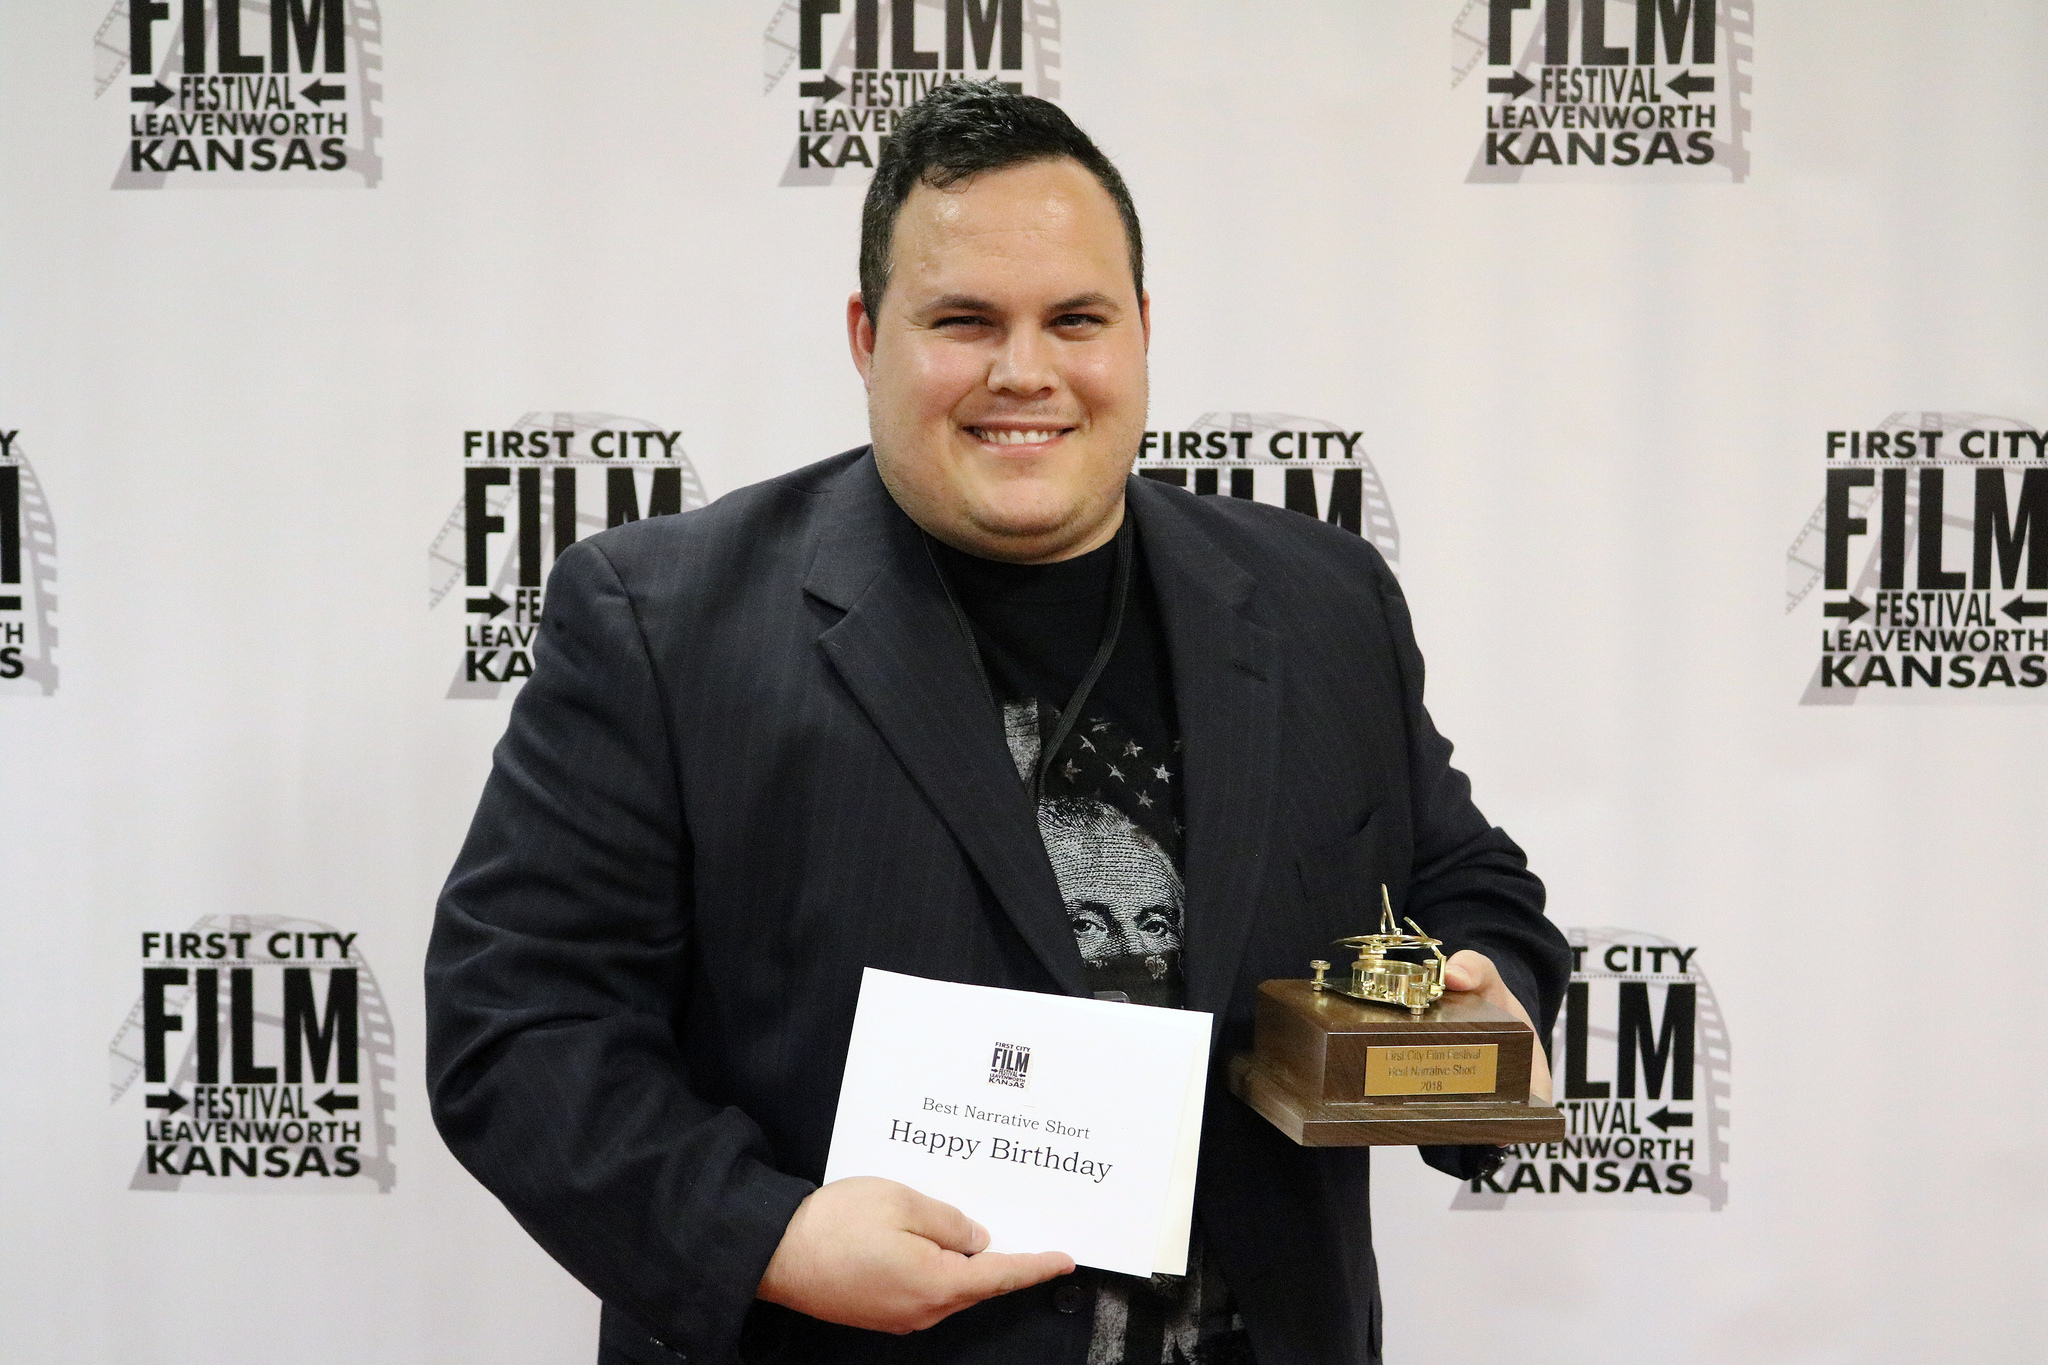 """- Filmmaker Kyle Kelley pauses for a photo during the award ceremony March 23, 2018 at the Riverfront Community Center in Leavenworth, Kan. Kelley's film """"Happy Birthday"""" received five awards at the 2018 festival including best narrative short, best local film, best film editing, best actor and best local supporting actress."""